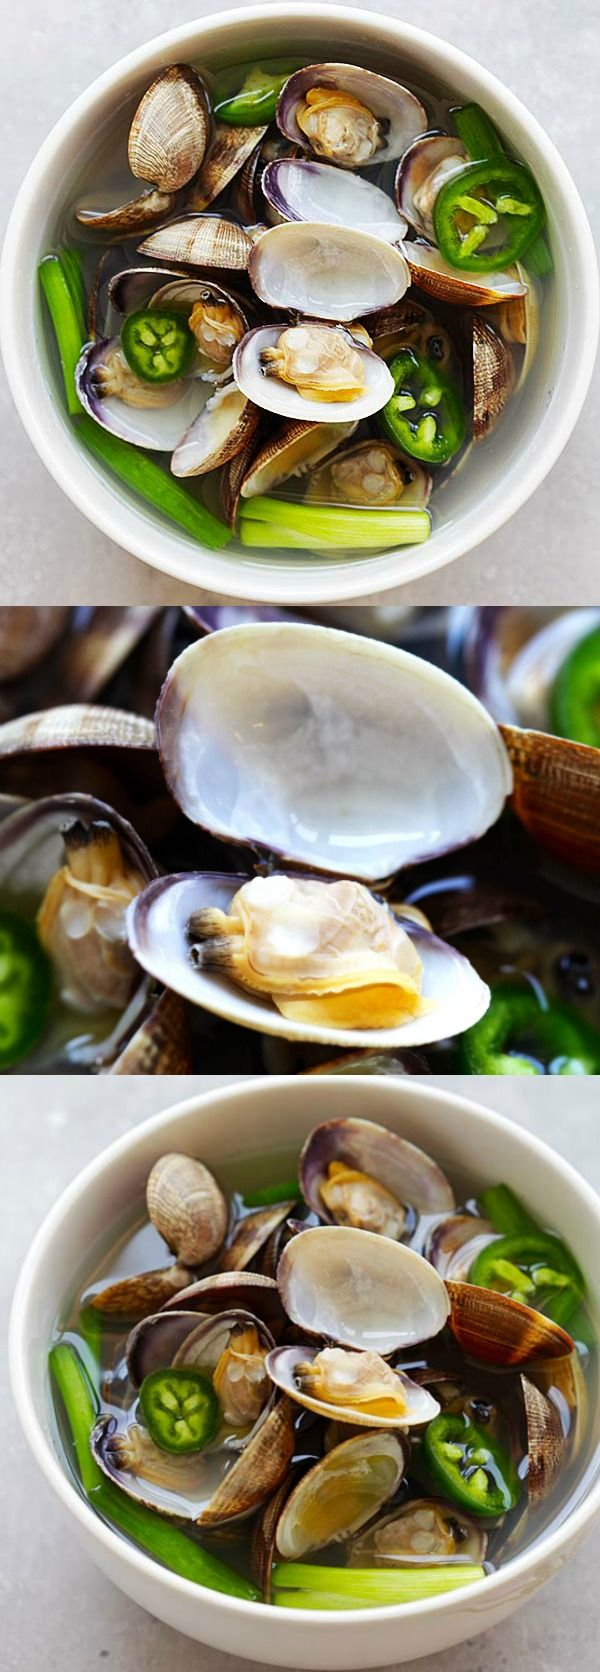 Korean Clam Soup – savory and briny clam soup with jalapeno and garlic. Easy recipe that takes only 10 minutes to make and so delicious | rasamalaysia.com